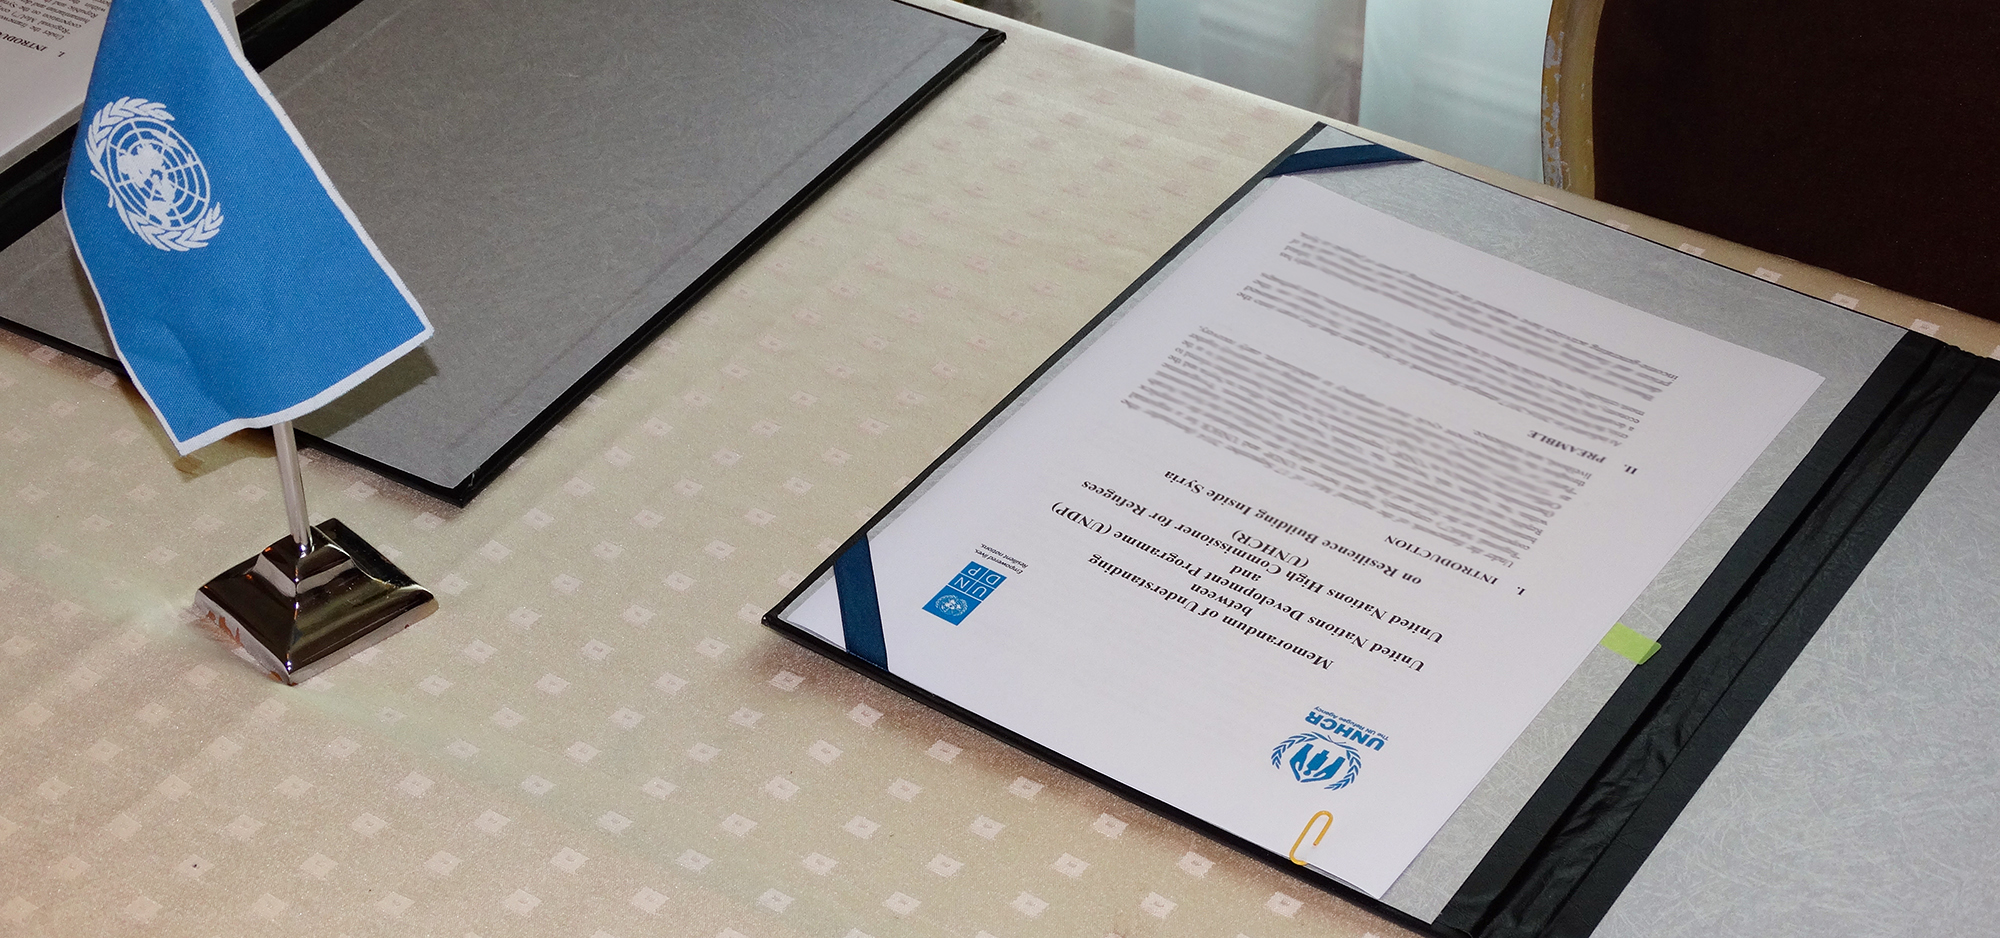 UNHCR and UNDP sign a new agreement for Resilience Building in Syria